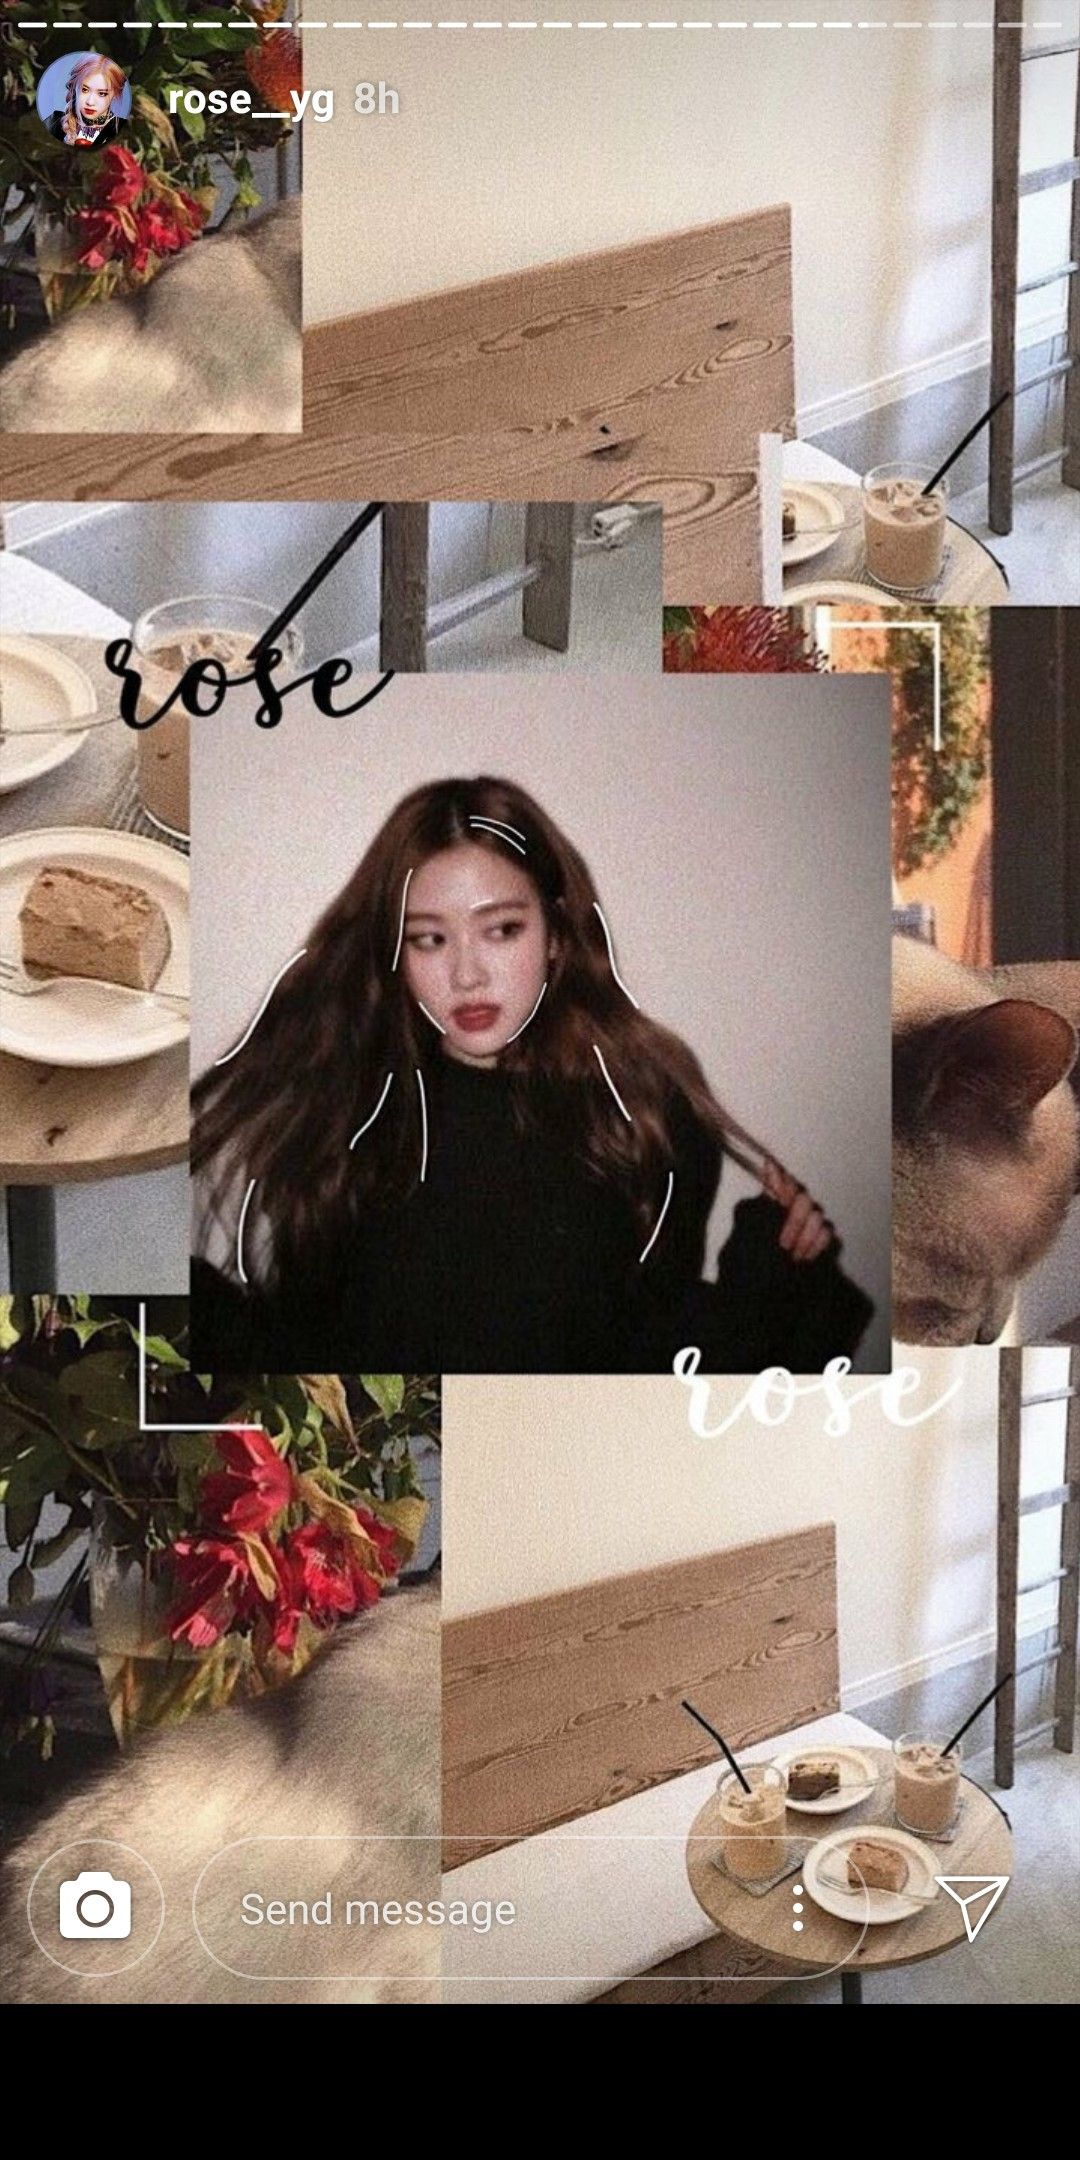 Pin by Cristinamgonzalezm on BLACKPINK Aesthetic roses